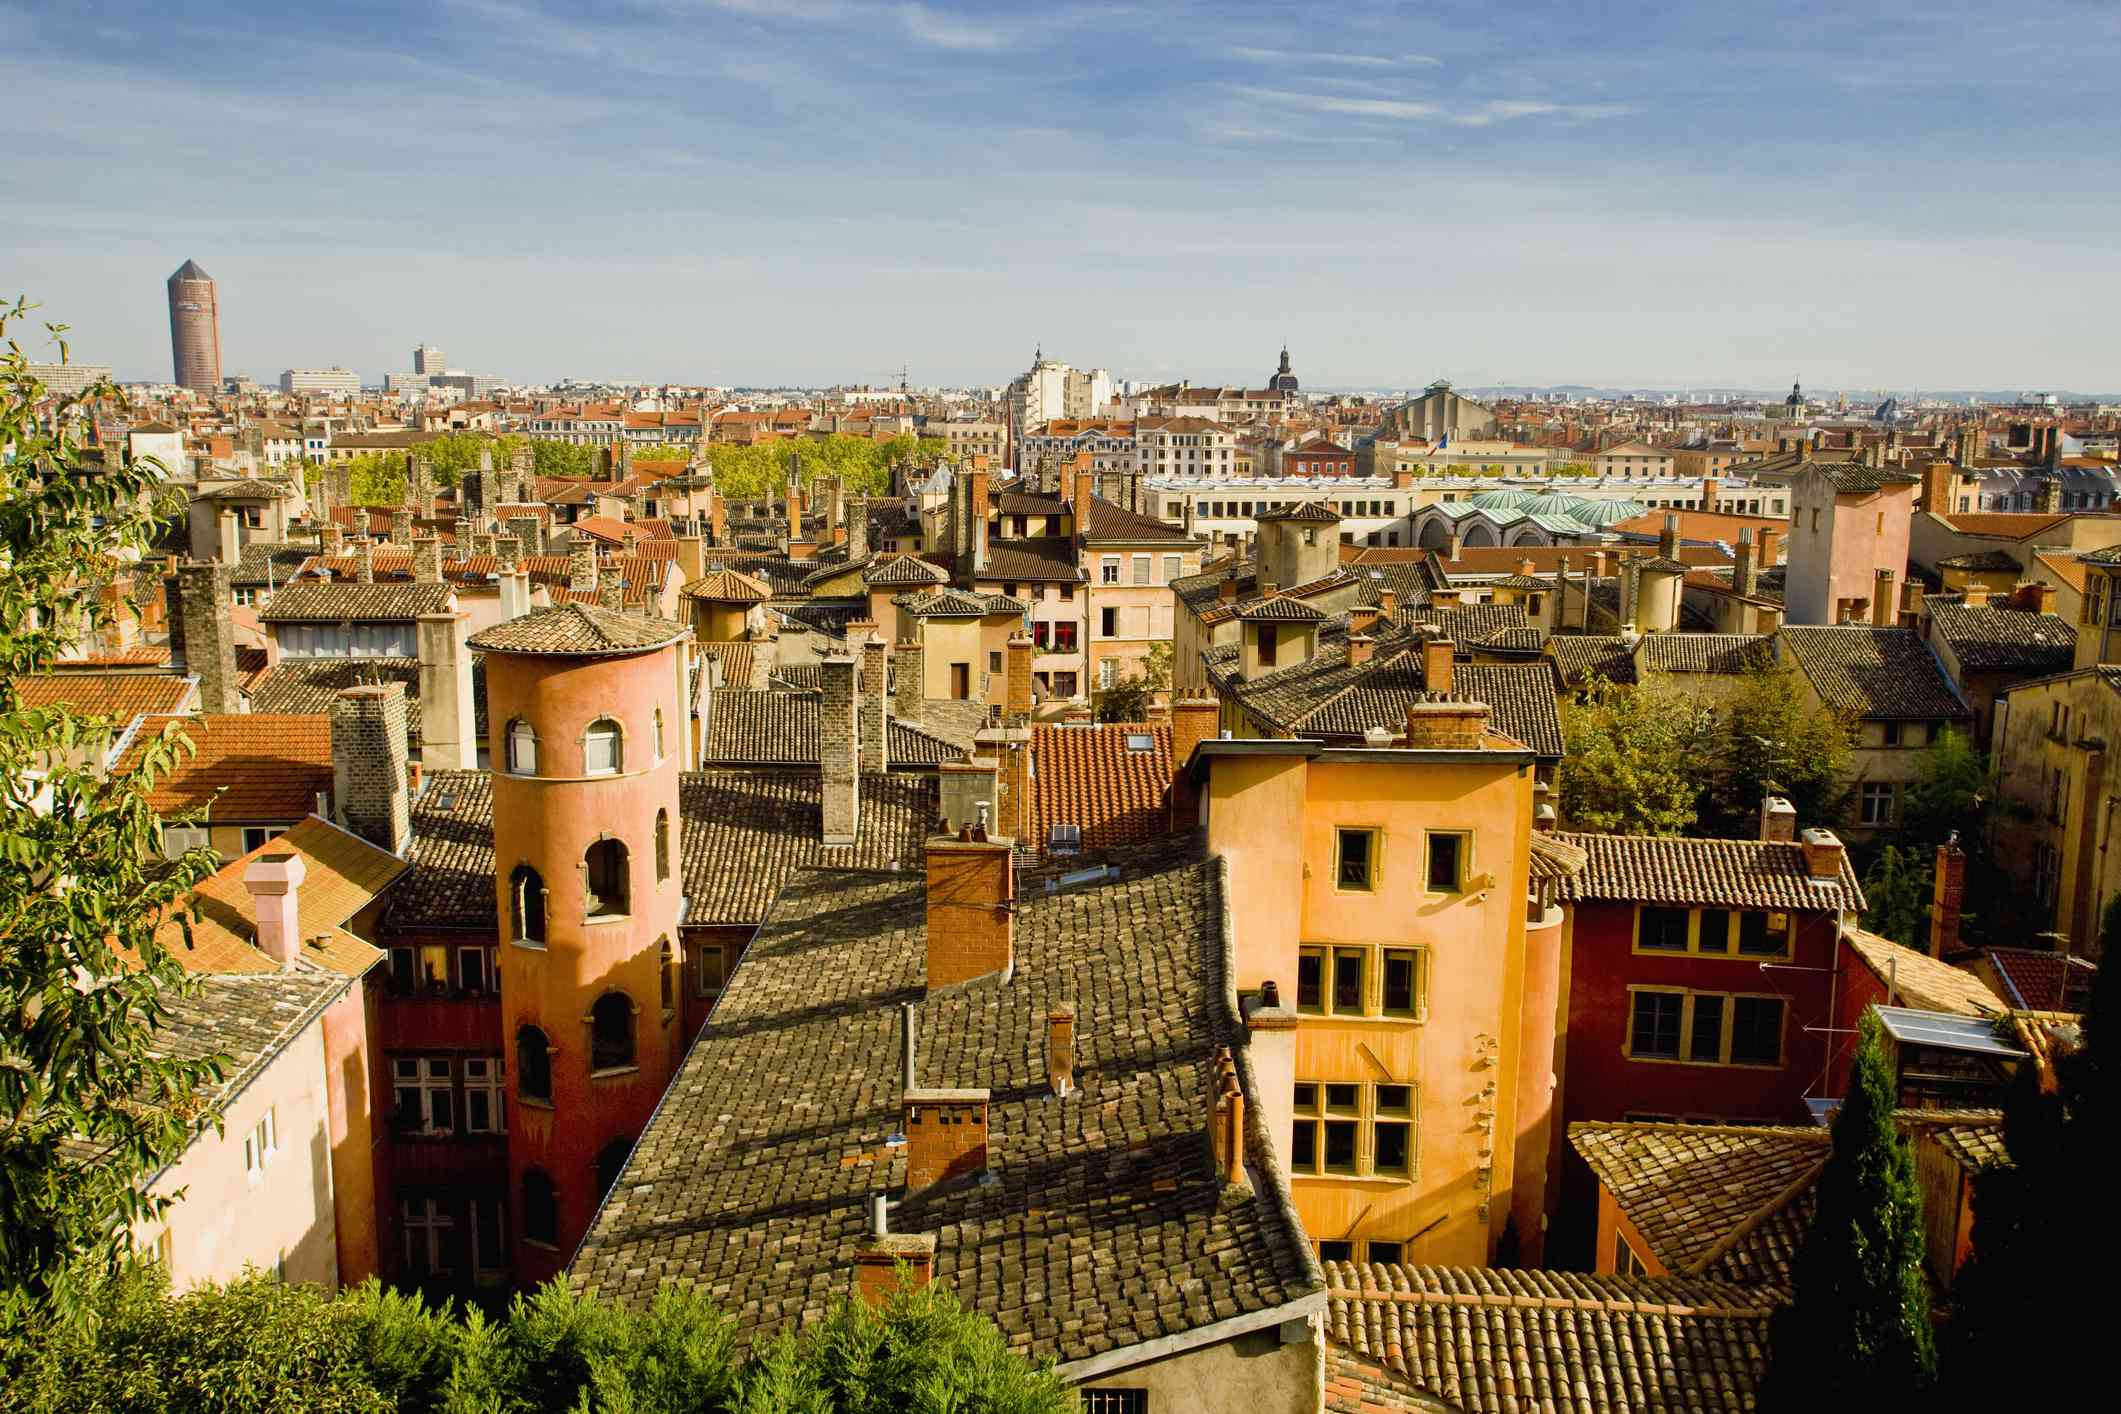 View of roofs in Old Lyon, France